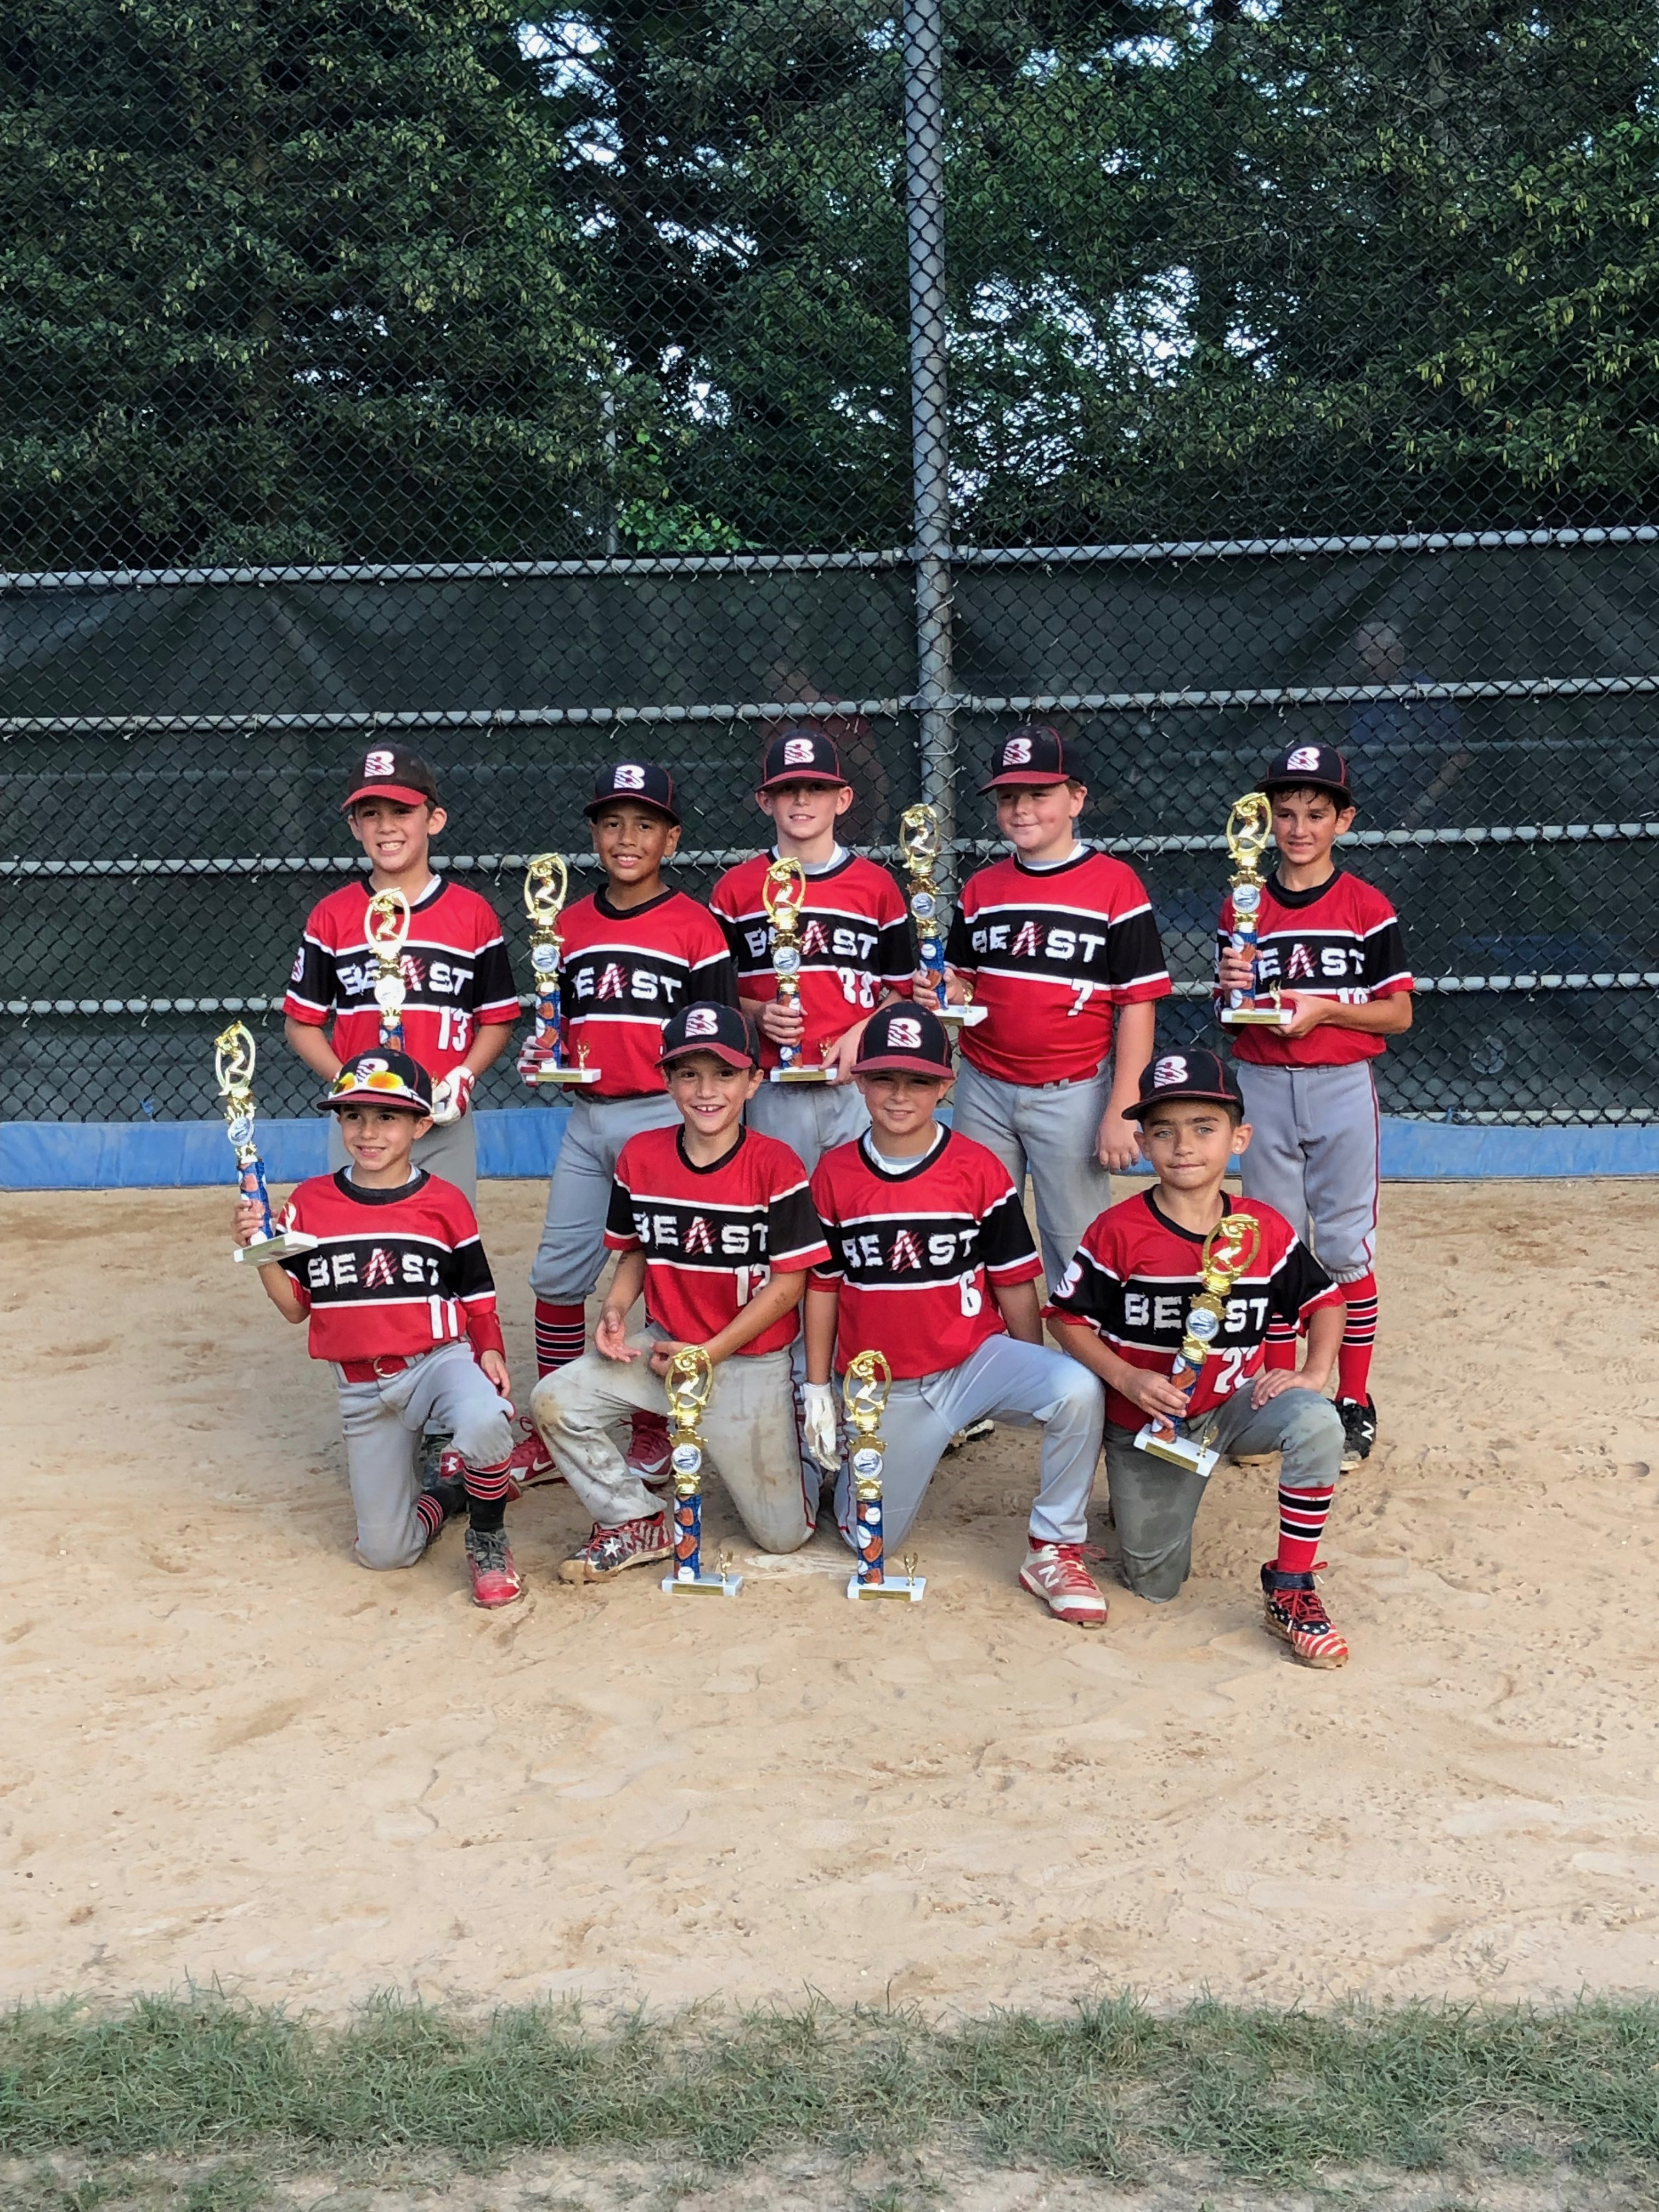 Congratulations to the 2019 Hot Stove Summer League Champions! 8u American- Team Beast